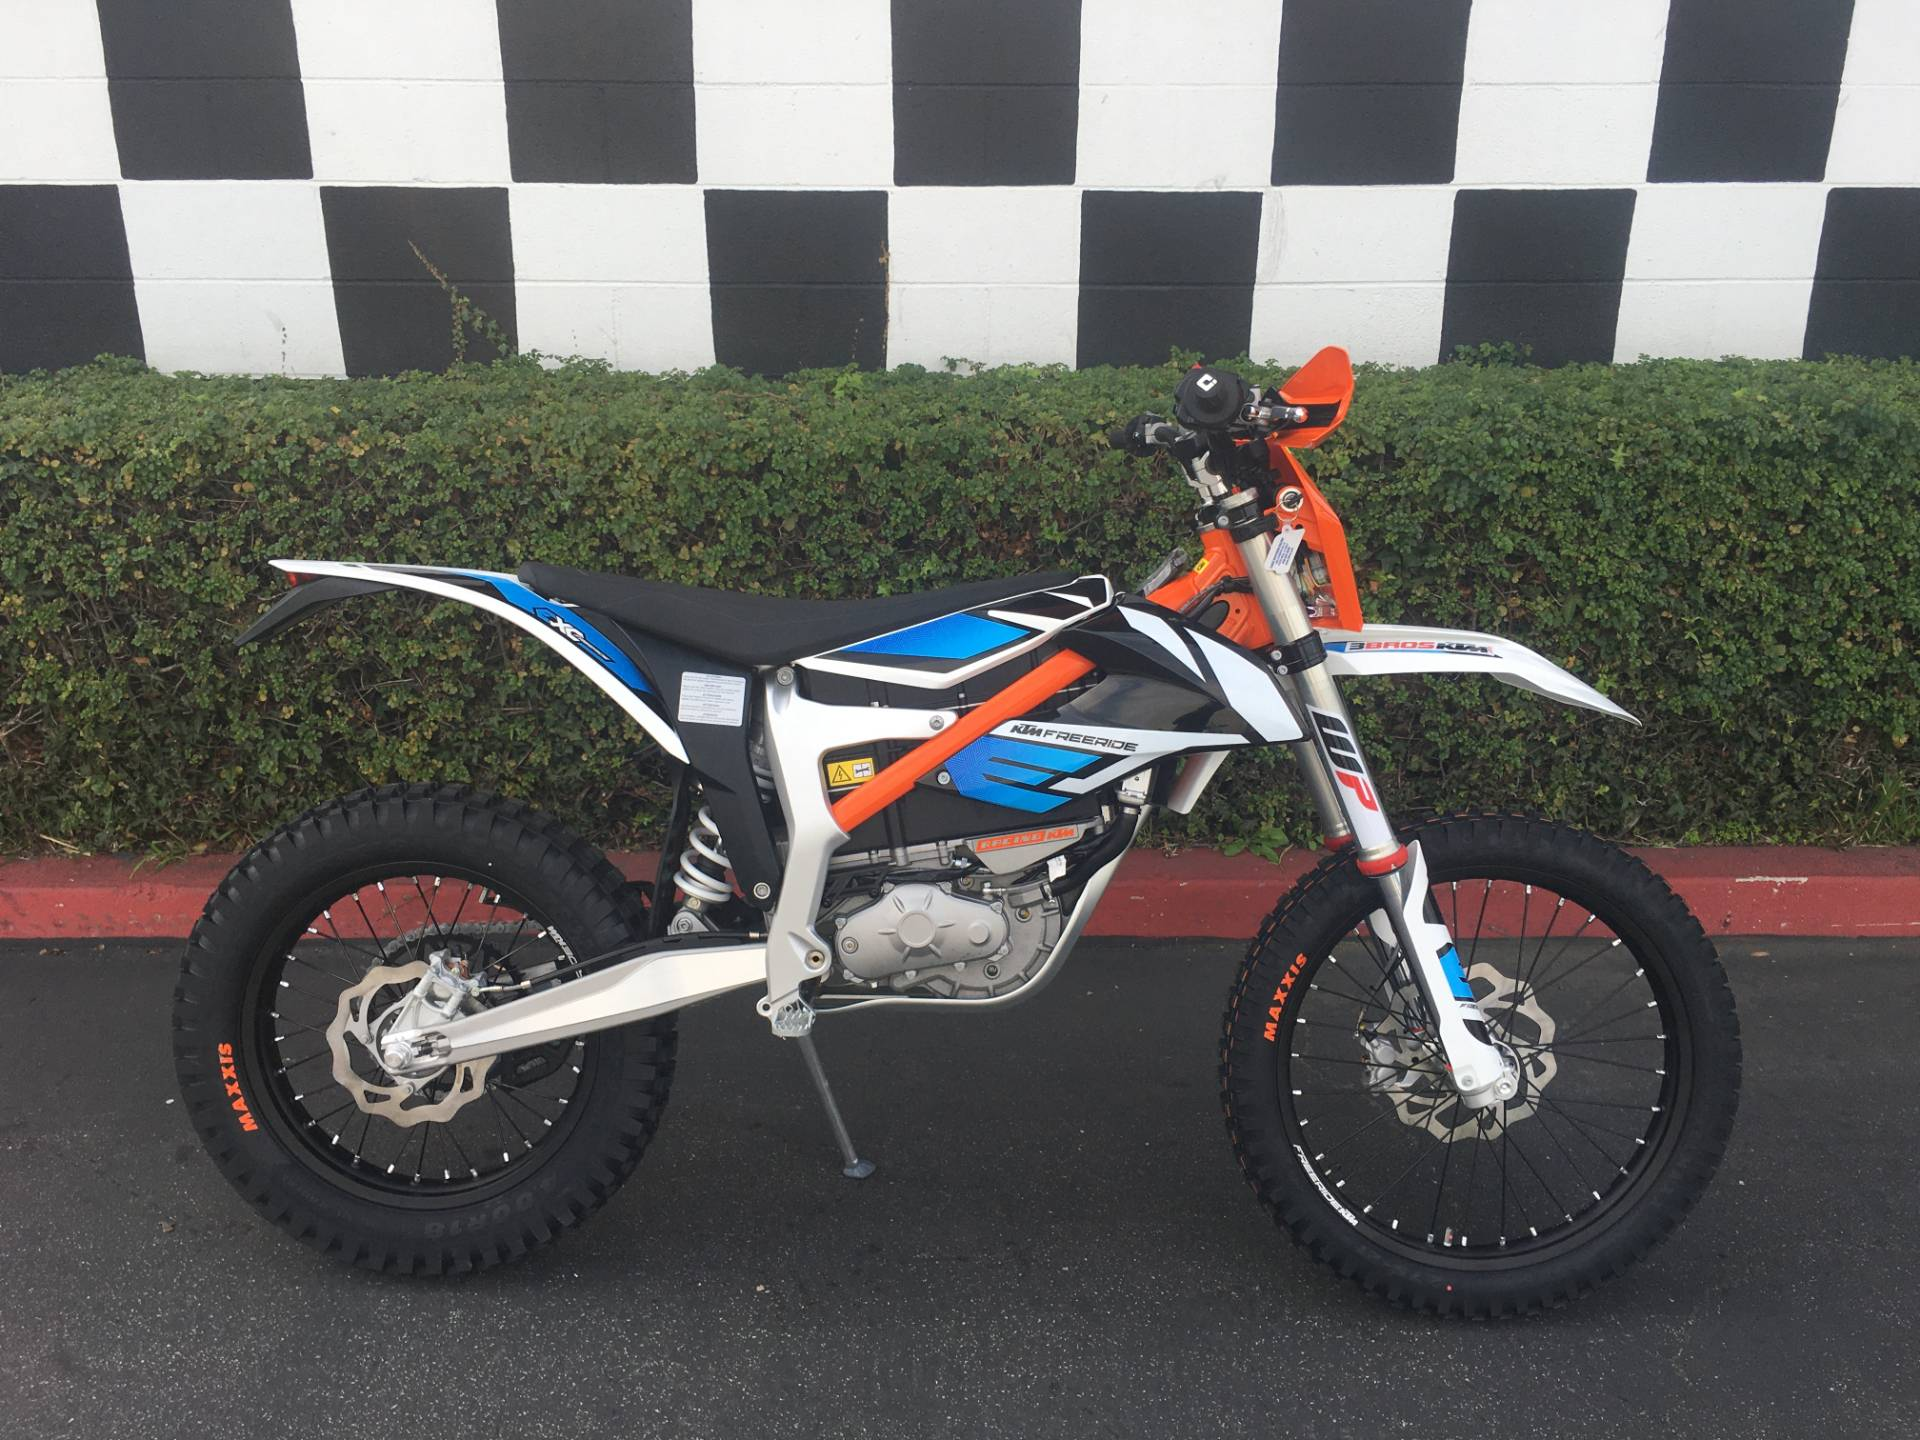 2020 KTM 2020 KTM FREERIDE E-XC in Costa Mesa, California - Photo 1